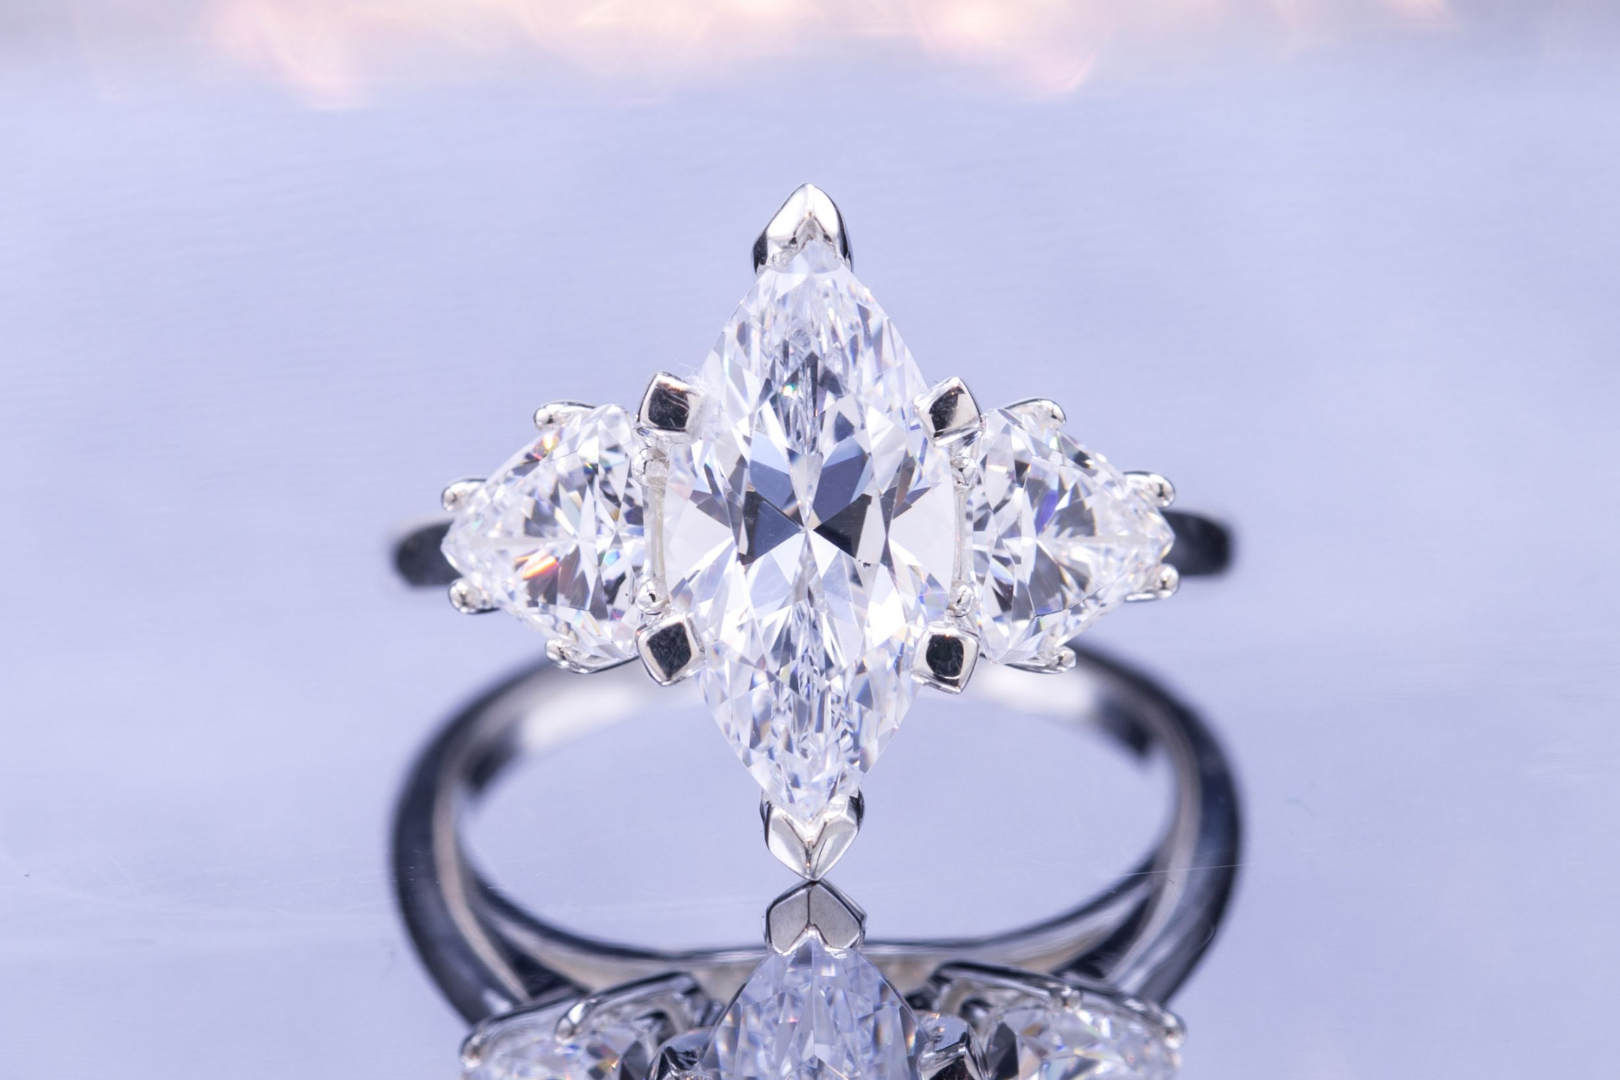 Three-stone cubic zirconia ring with marquise center stone and trillion cut side stones